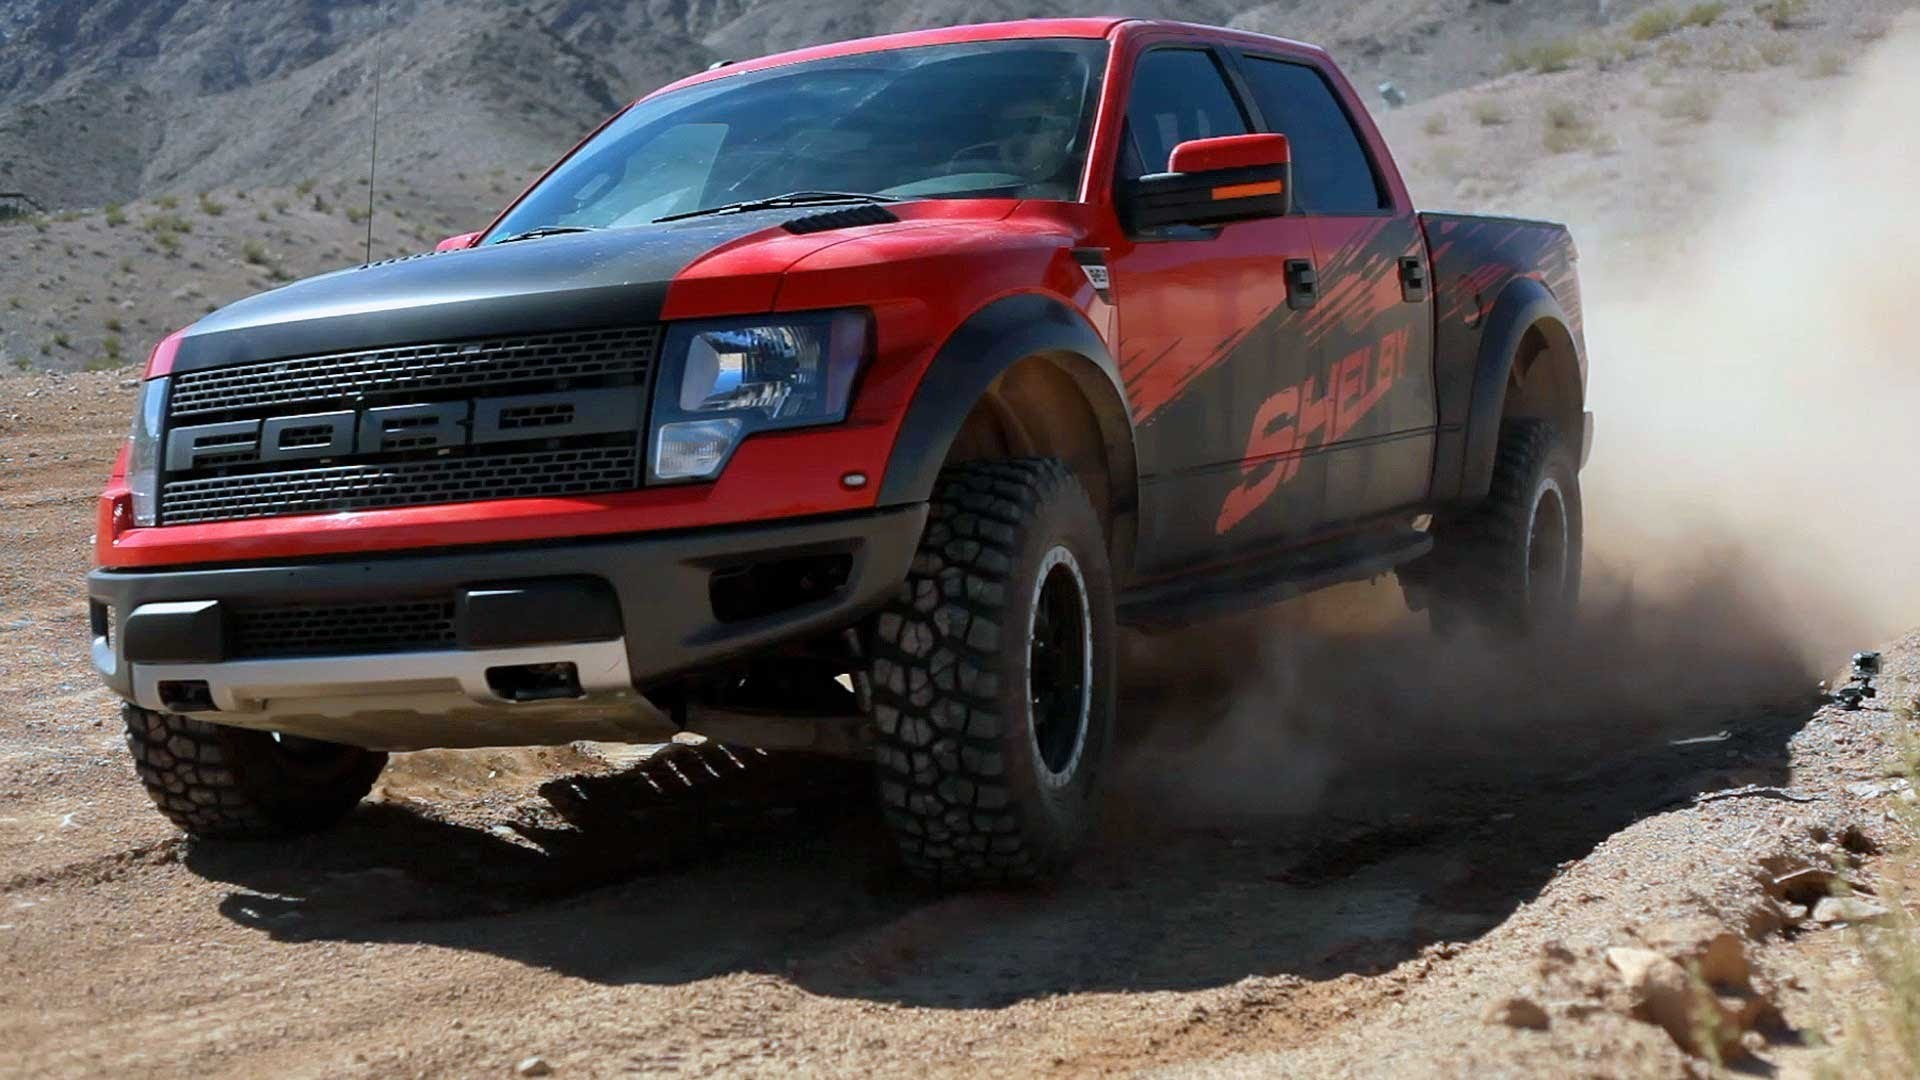 1920x1080 2560x1440 Cars wallpapers Ford F-150 Raptor Race Truck - 2016